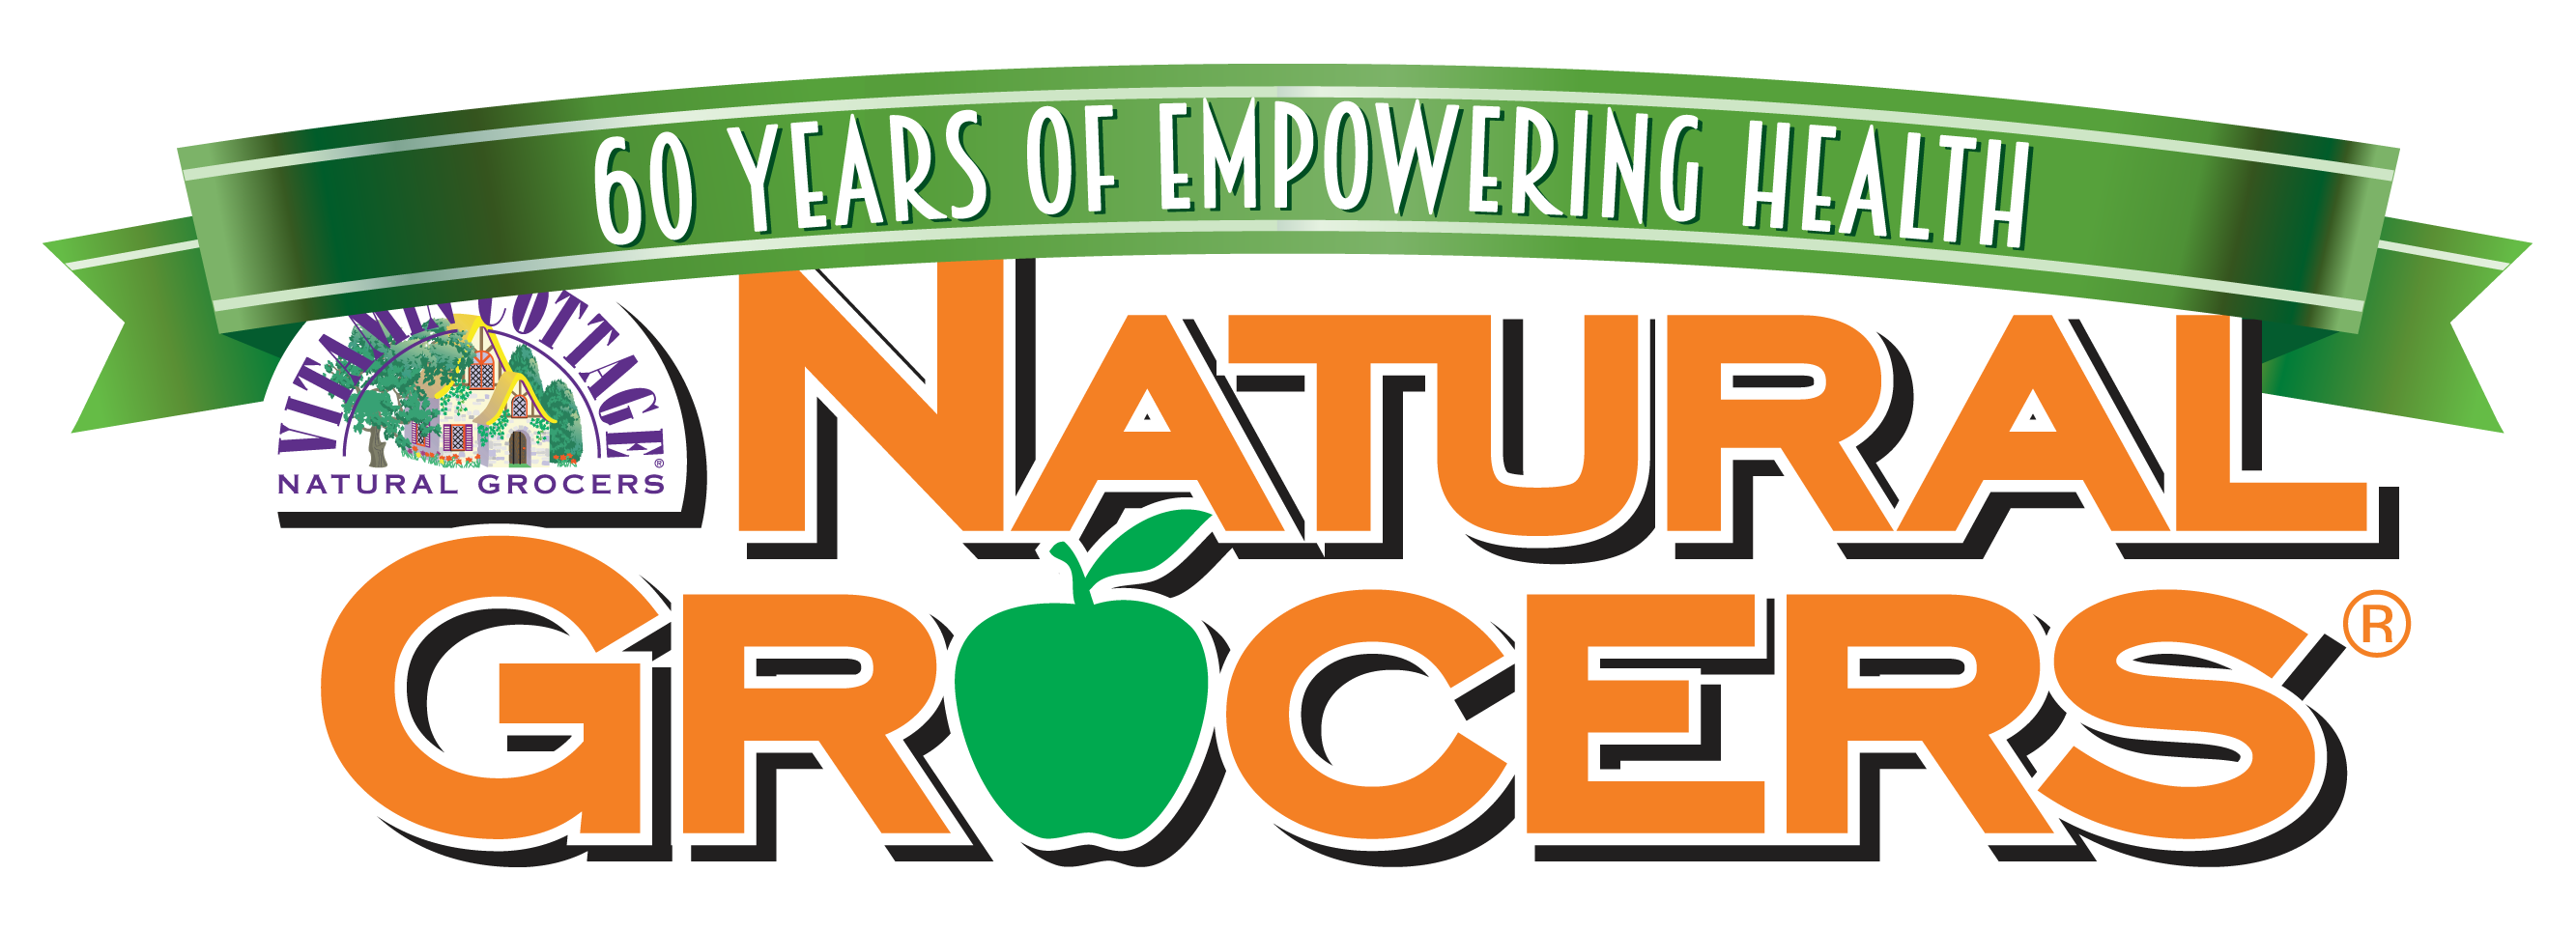 Natural Grocers Logo About Natural Grocers 39